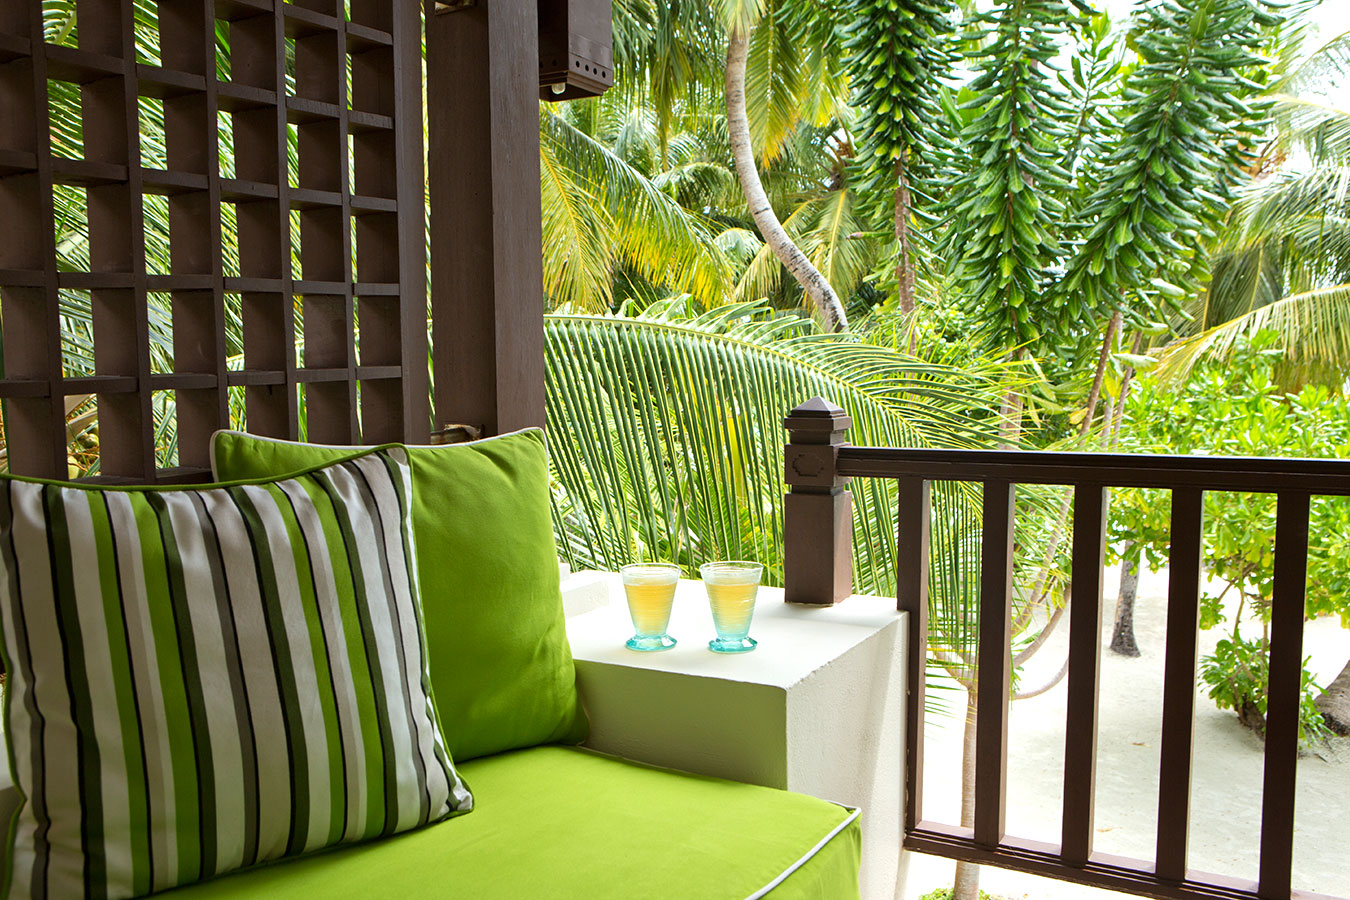 Superior Room Upstairs Balcony Image | Kurumba Maldives | Maldives Resort